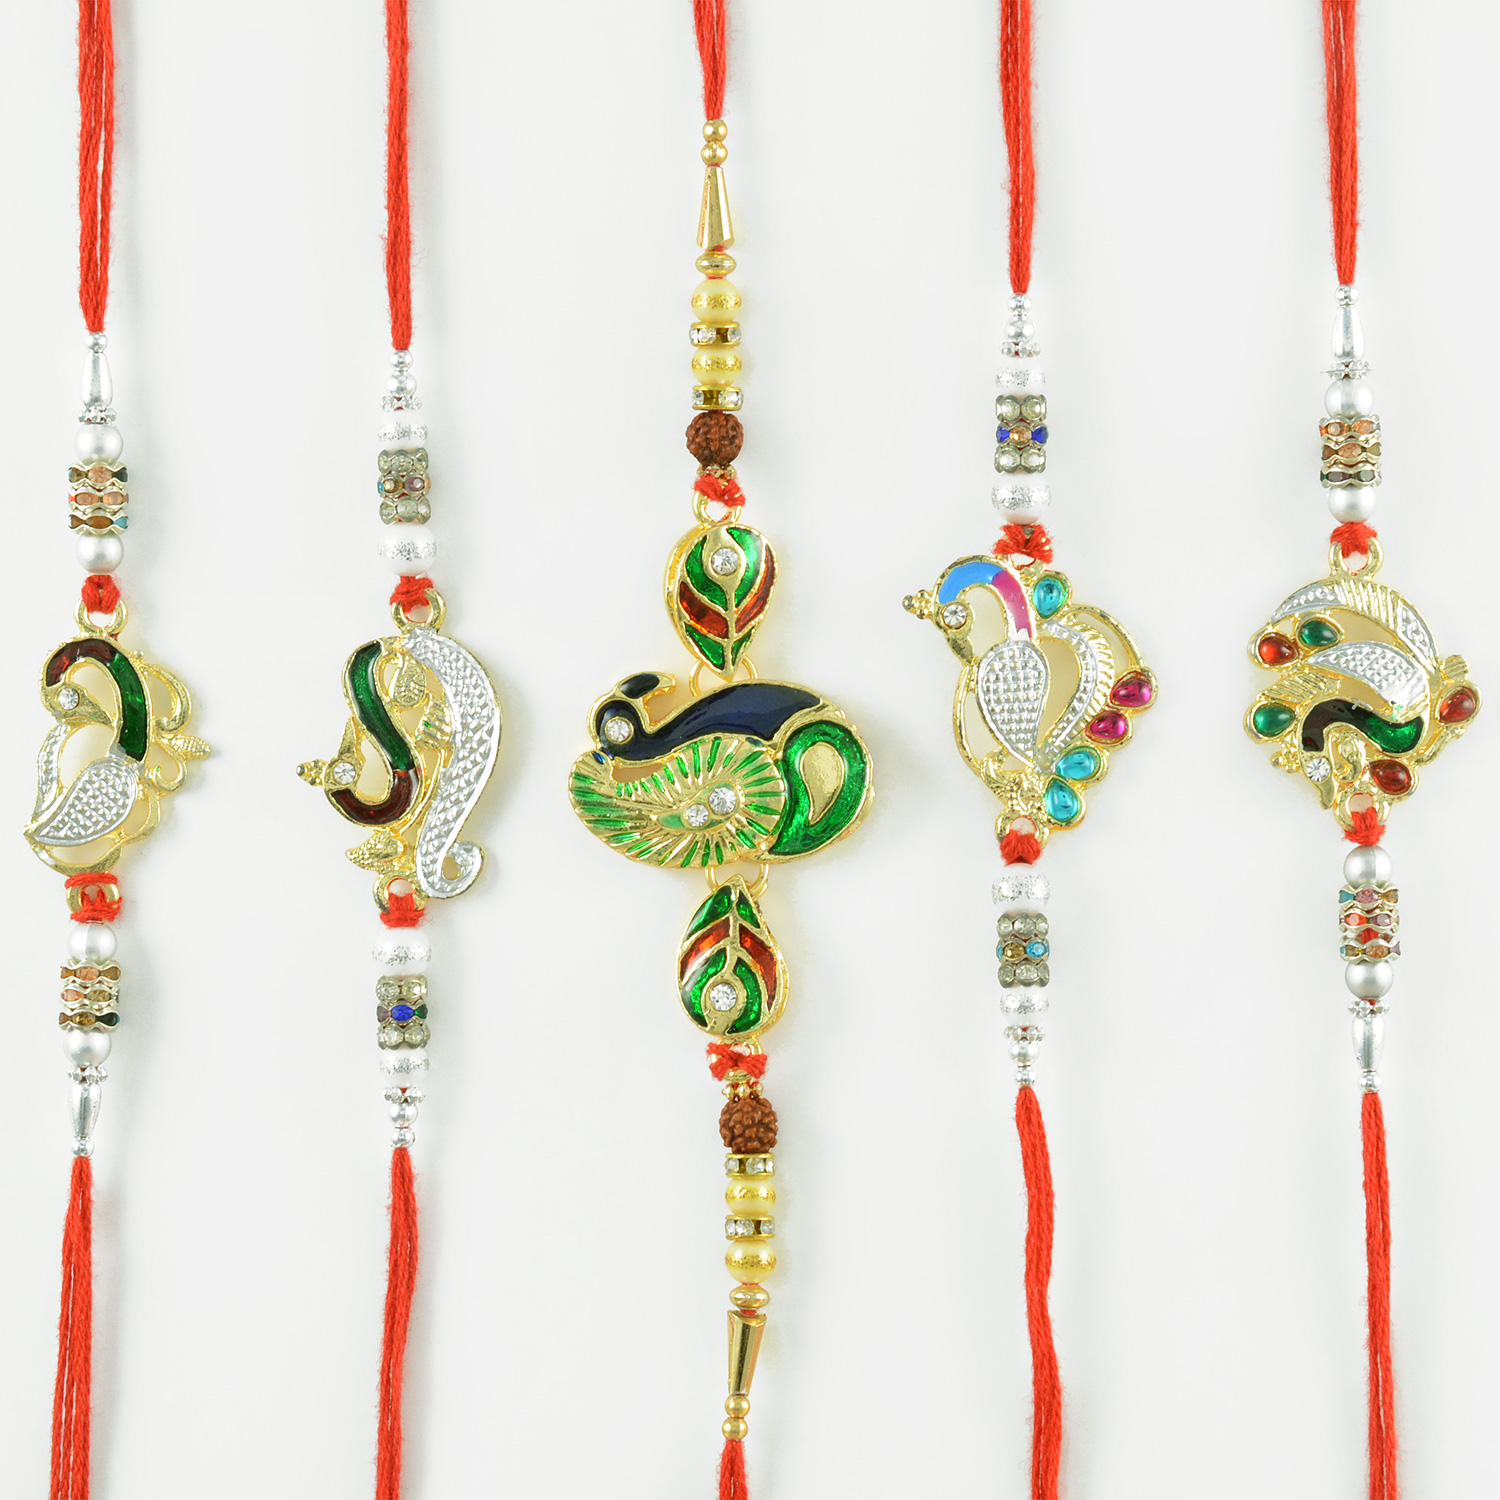 Rare Diamond Studded Peacock Handmade Rakhi Set